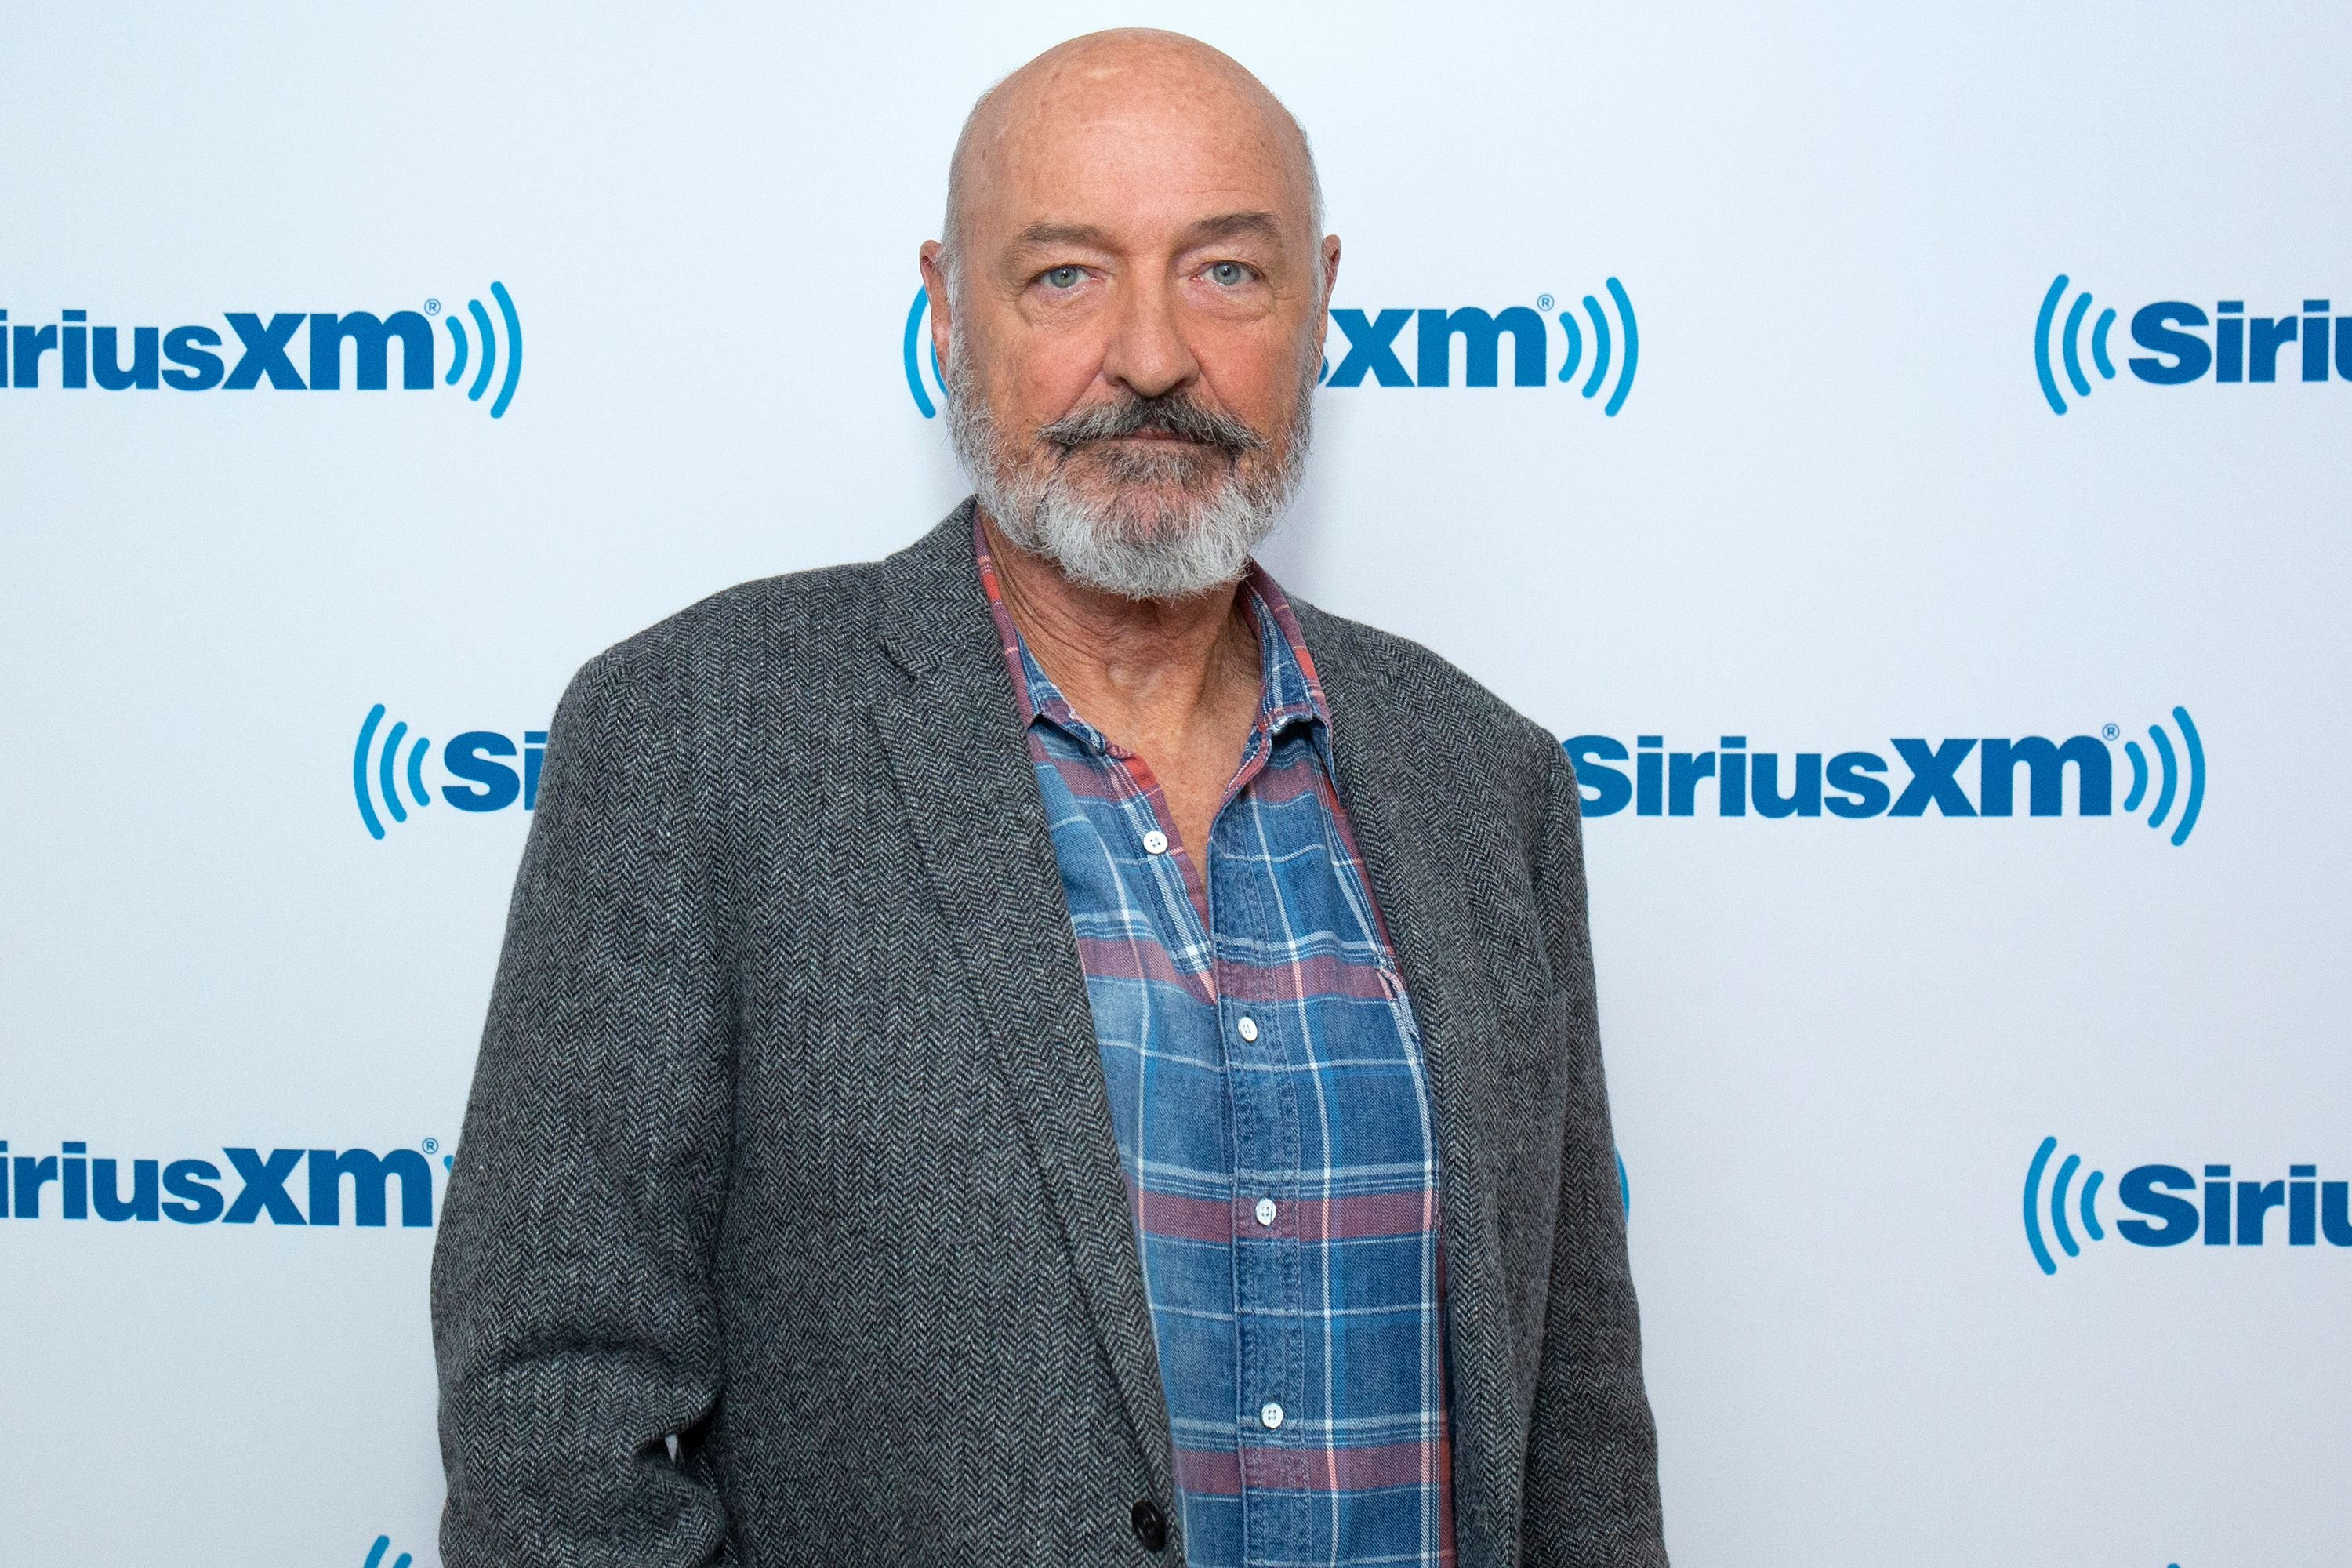 Terry O'Quinn visite les studios SiriusXM le 30 octobre 2018 à New York.  | Photo : Getty Images